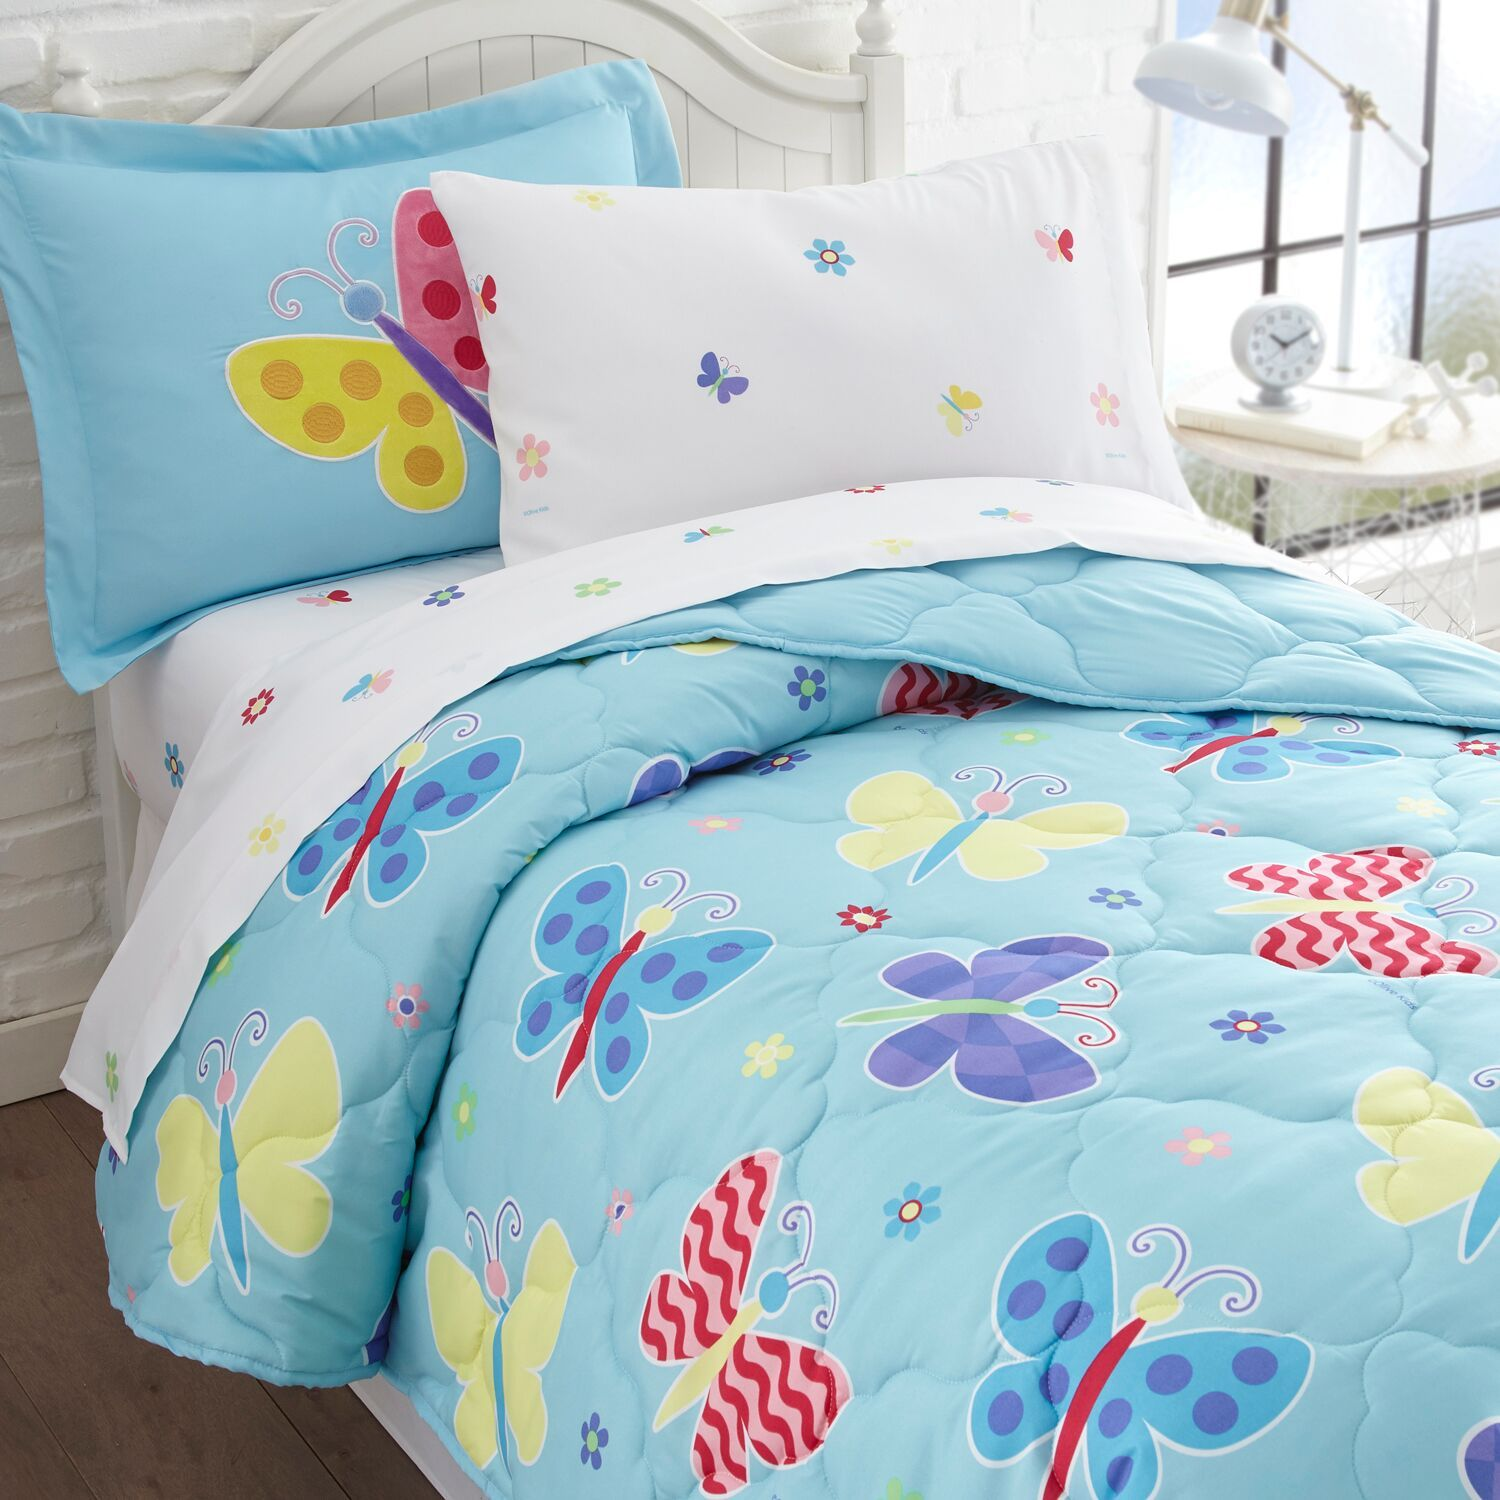 Blue Butterfly Bedding for Girls Twin or Full Bed in a Bag forter